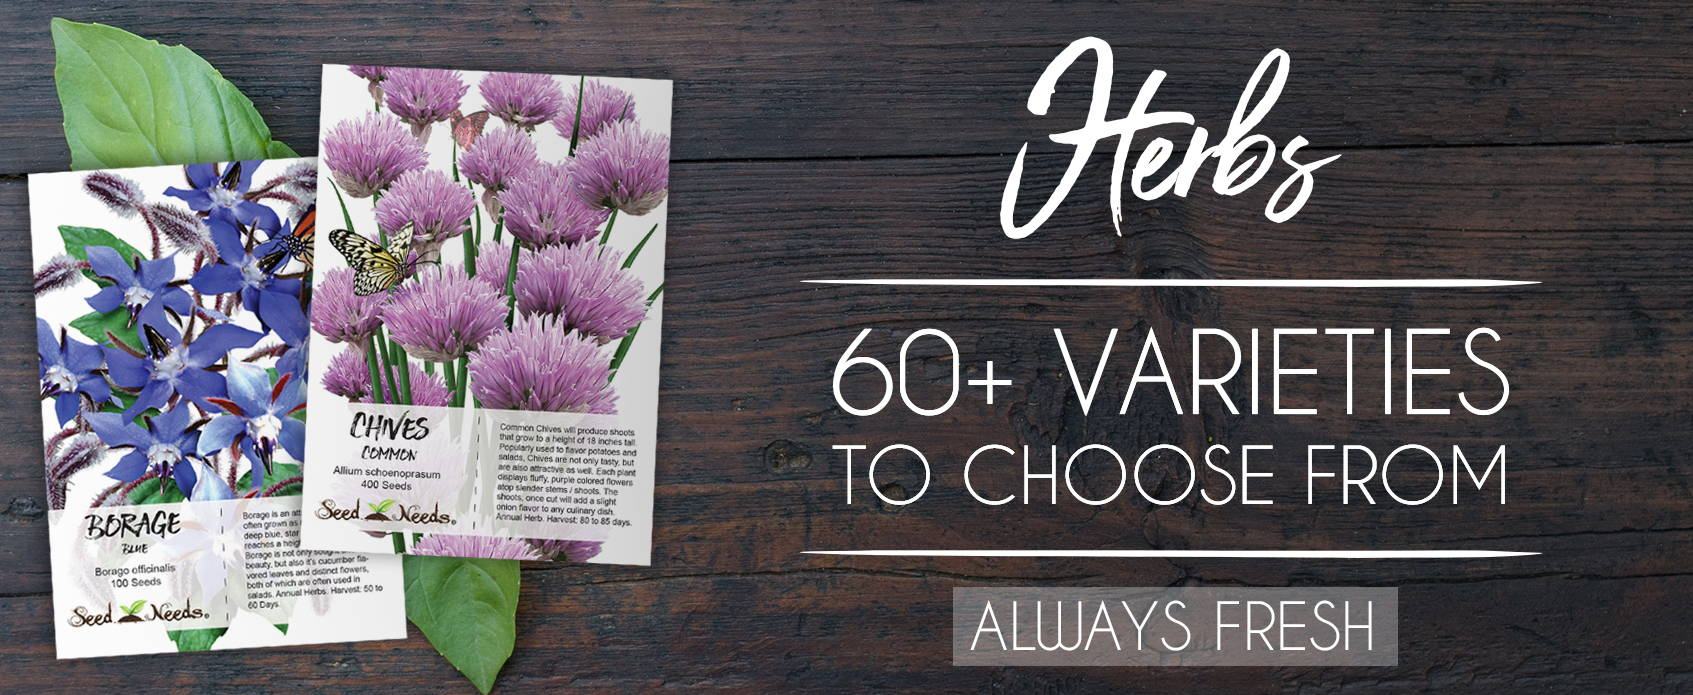 Seeds For Planting, Always Fresh & Guaranteed to Grow - Seed